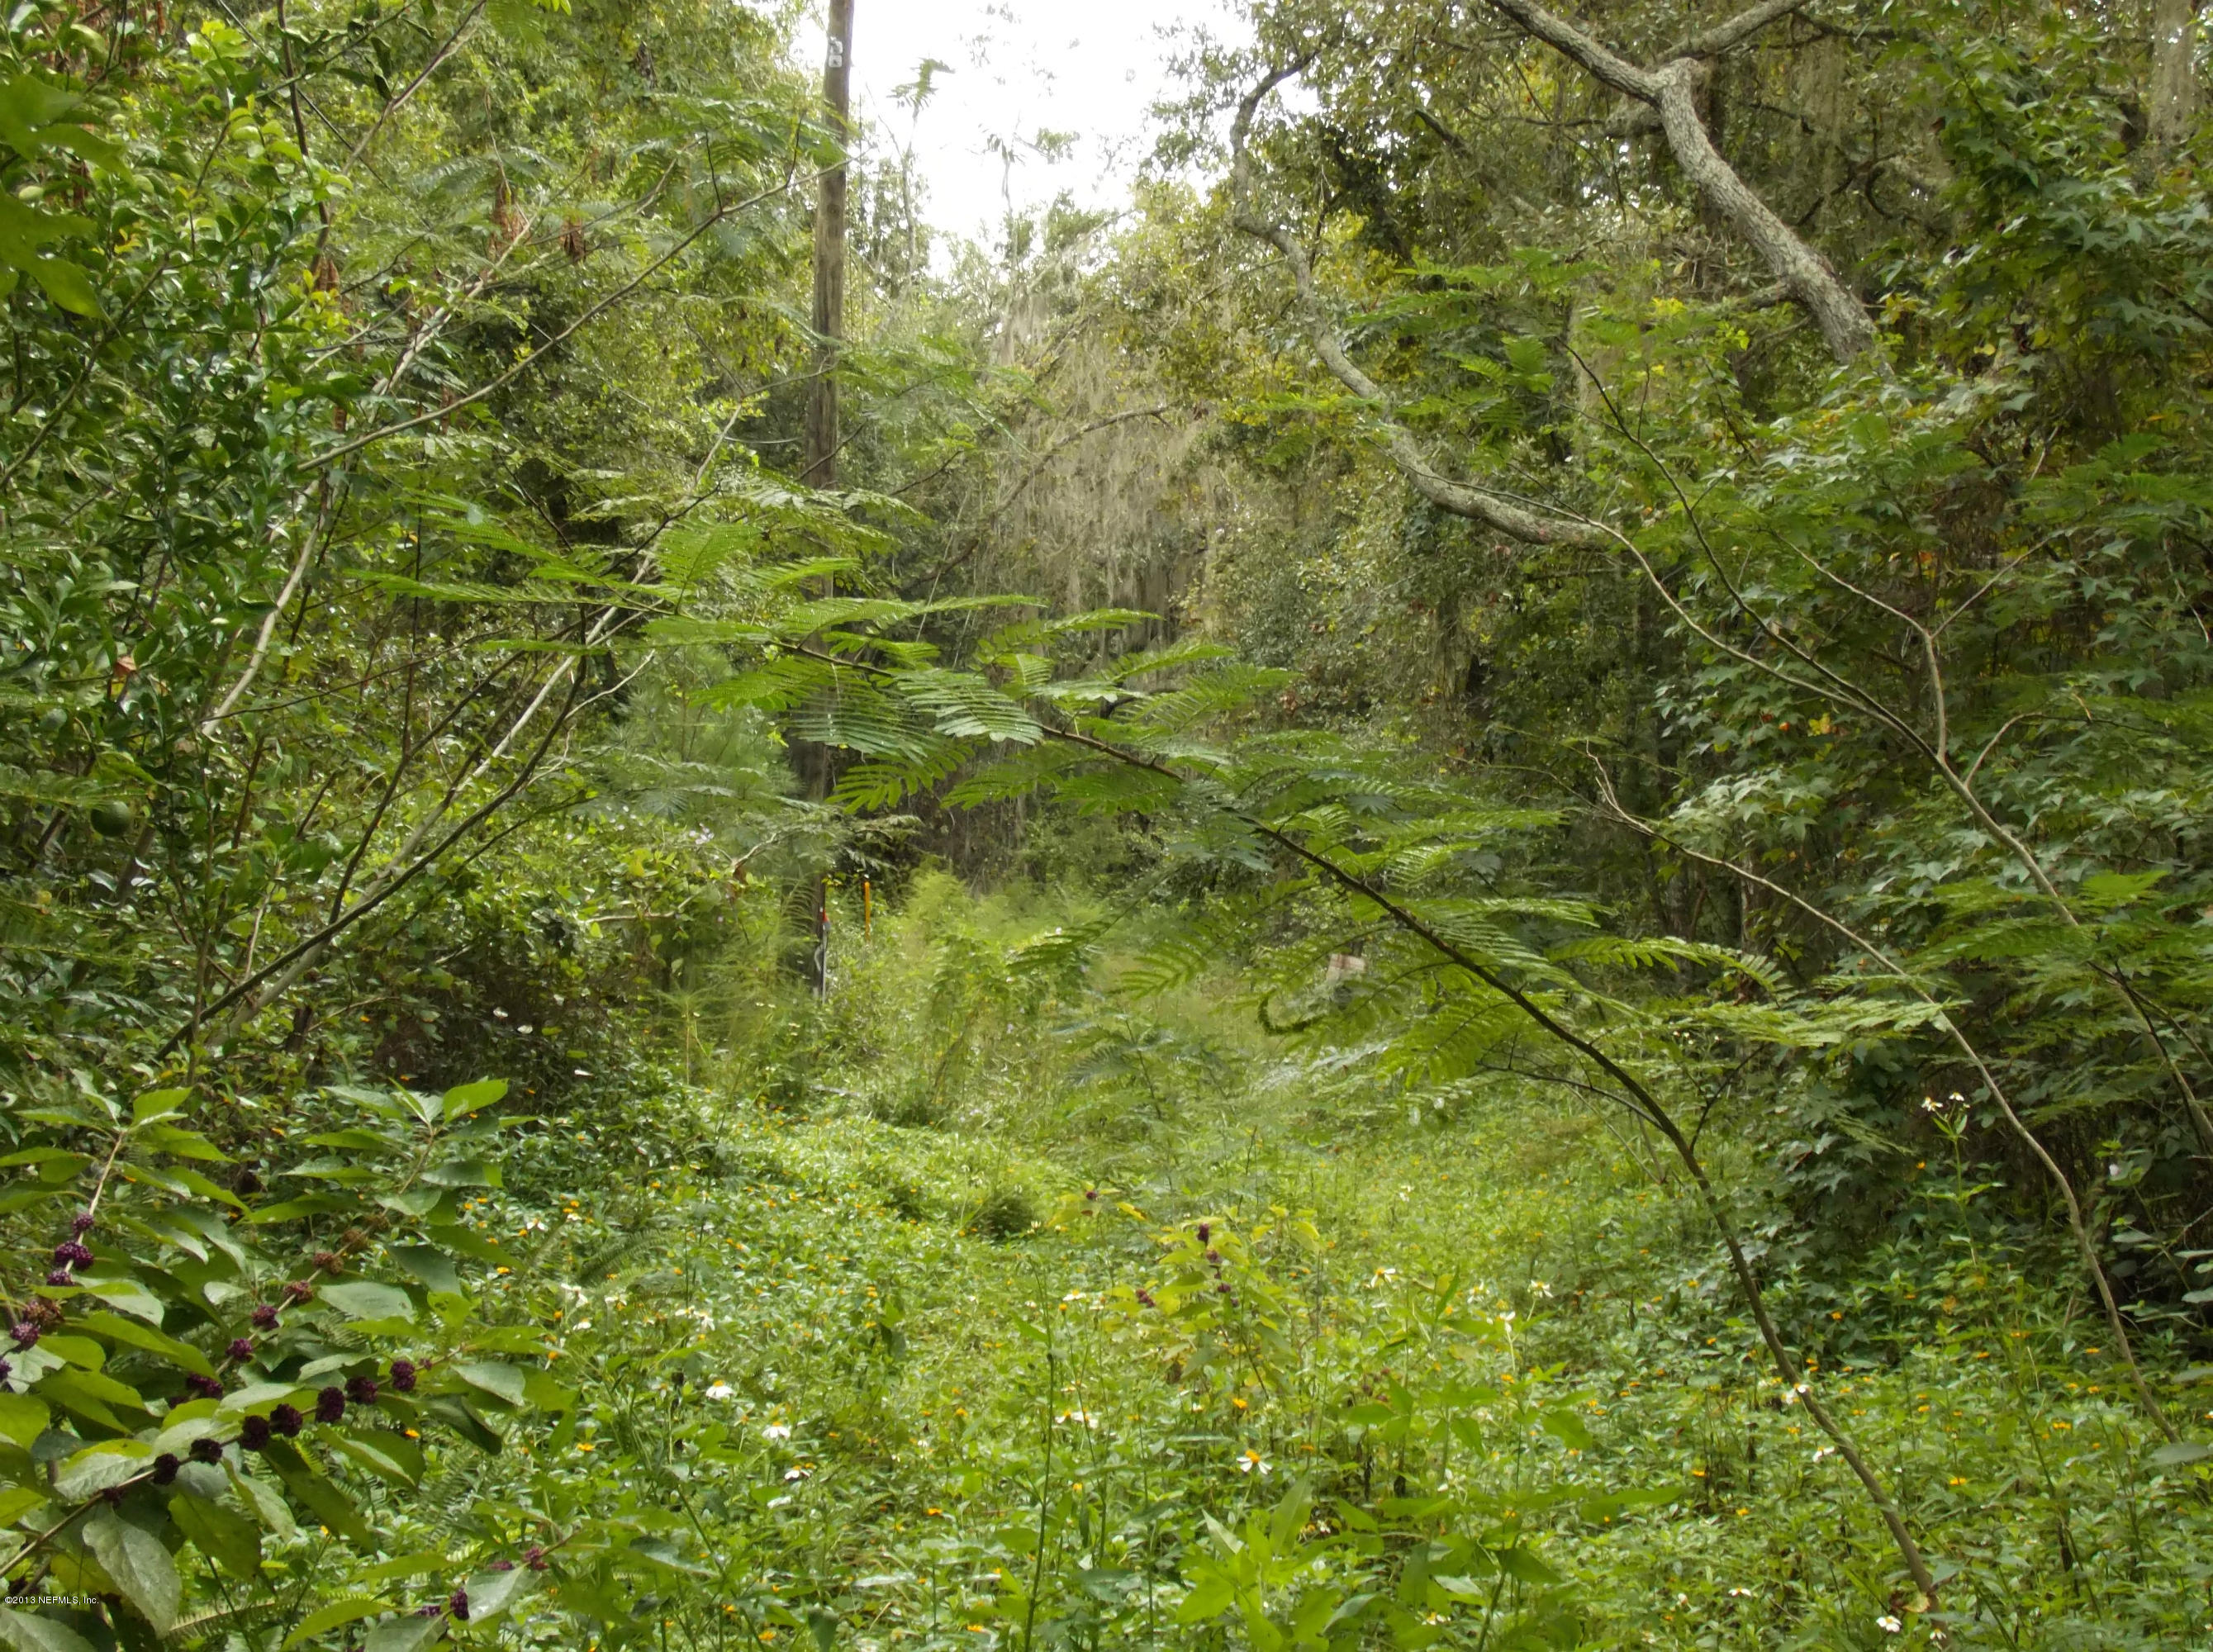 8486 PALMO FISH CAMP, ST AUGUSTINE, FLORIDA 32092, ,Vacant land,For sale,PALMO FISH CAMP,682357